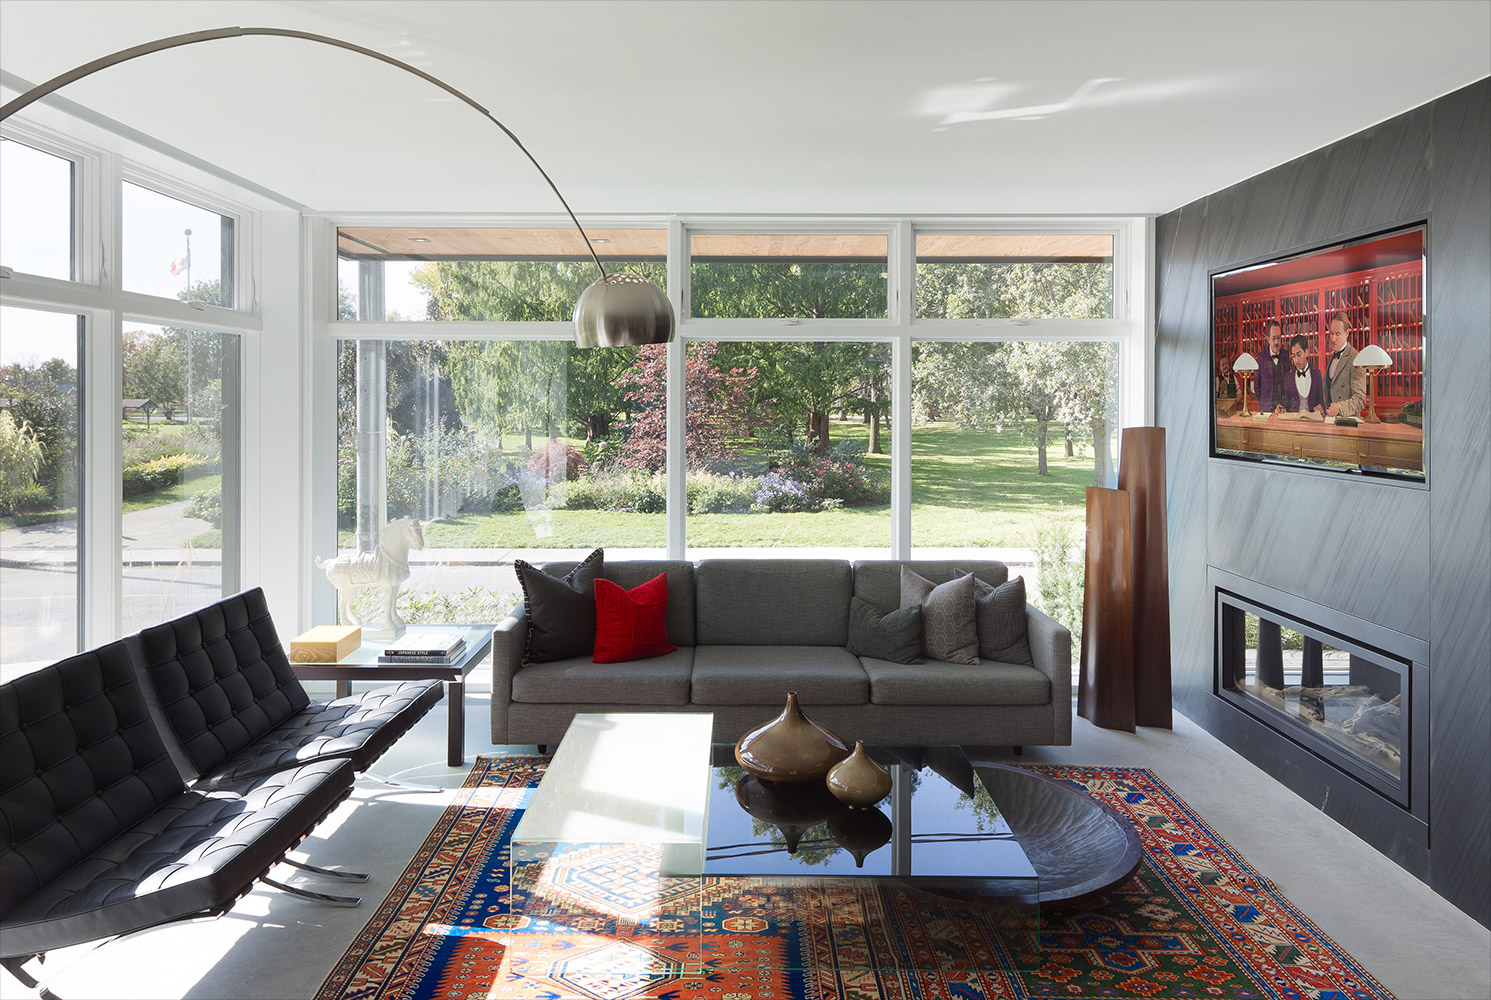 First floor living room with ribbon fireplace with textured black tile, polished concrete floor, floor-to-ceiling windows and gray sofa with Barcelona chairs